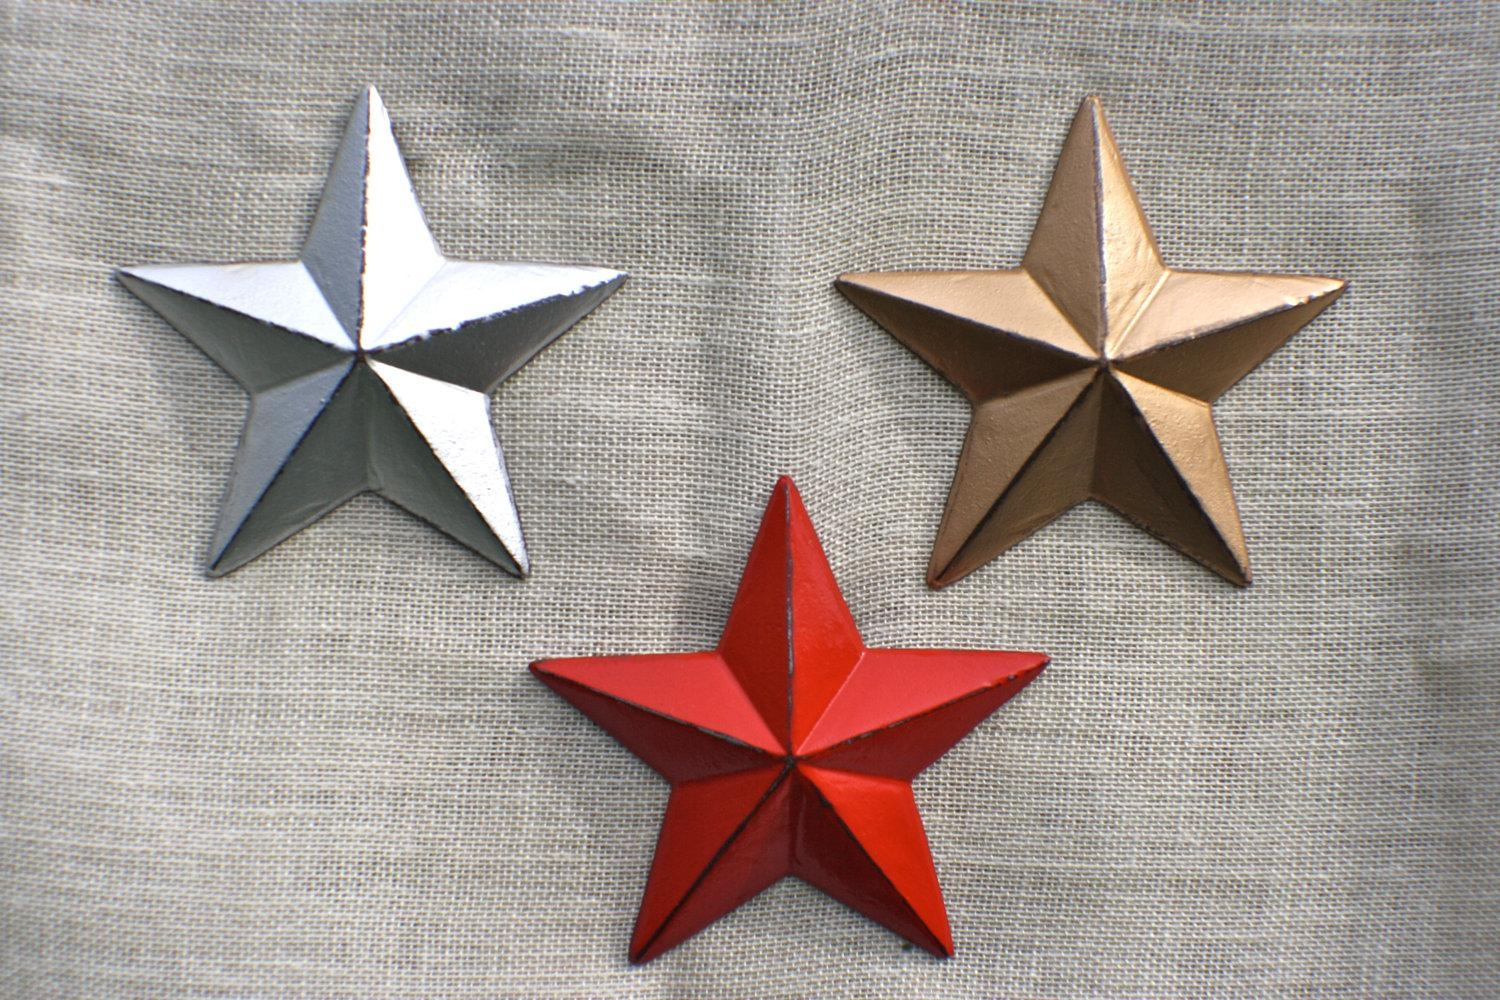 Texas Star Wall Decor | Home Decor And Design Intended For Texas Star Wall Art (View 16 of 20)